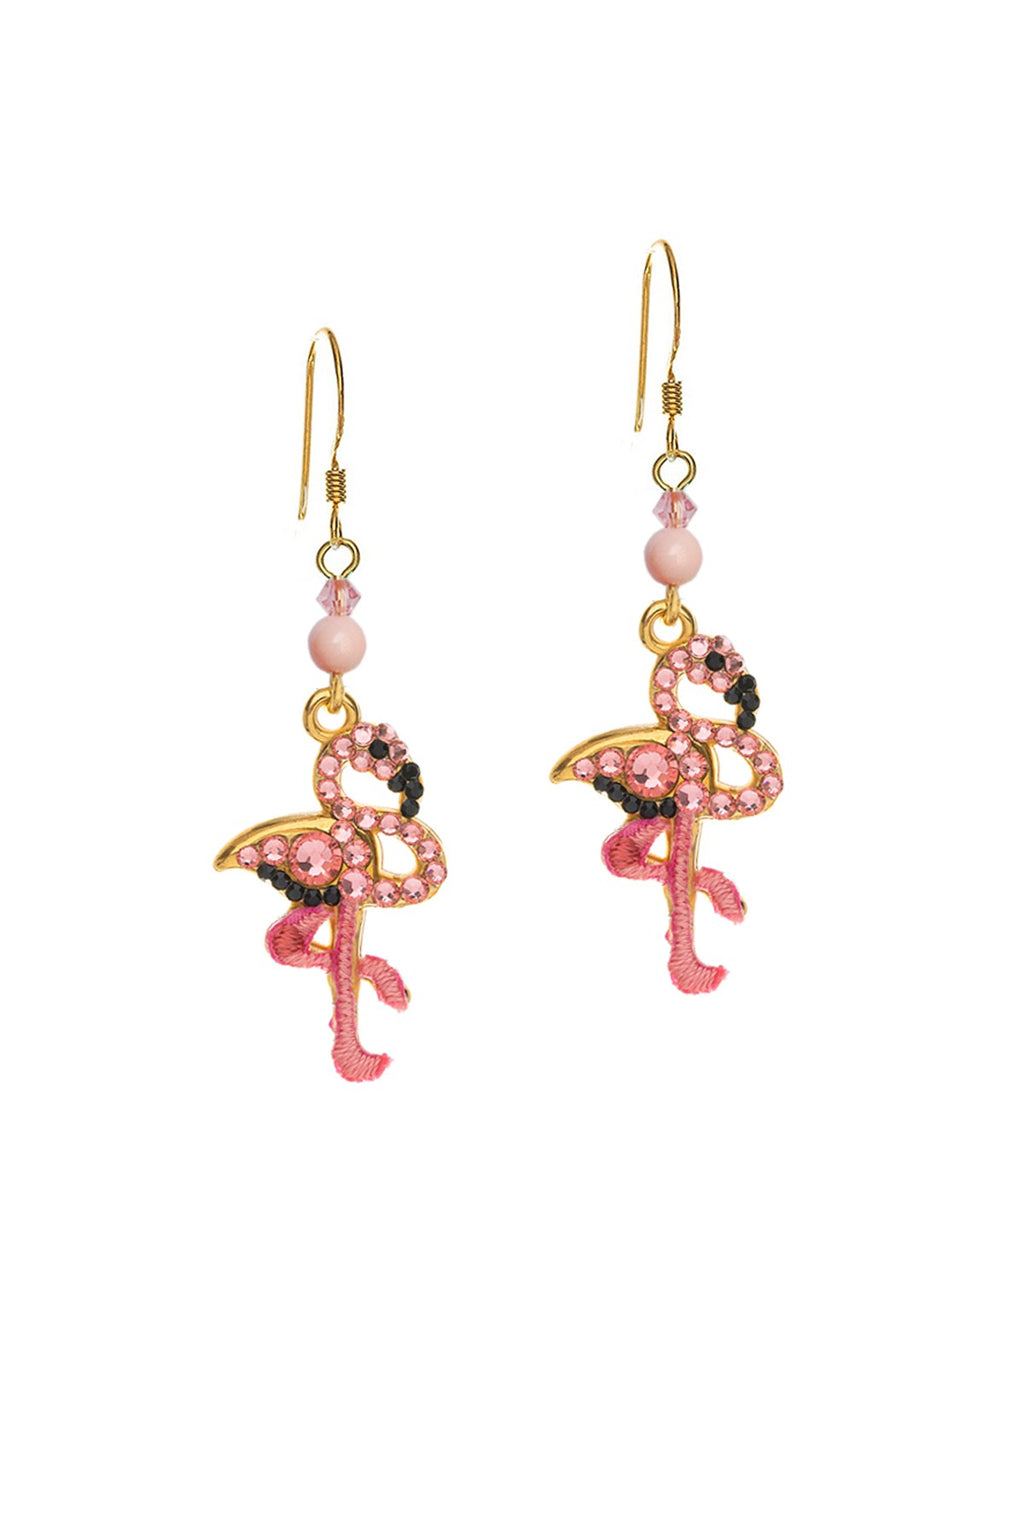 Small Flamingo earrings 22k Gold Plated